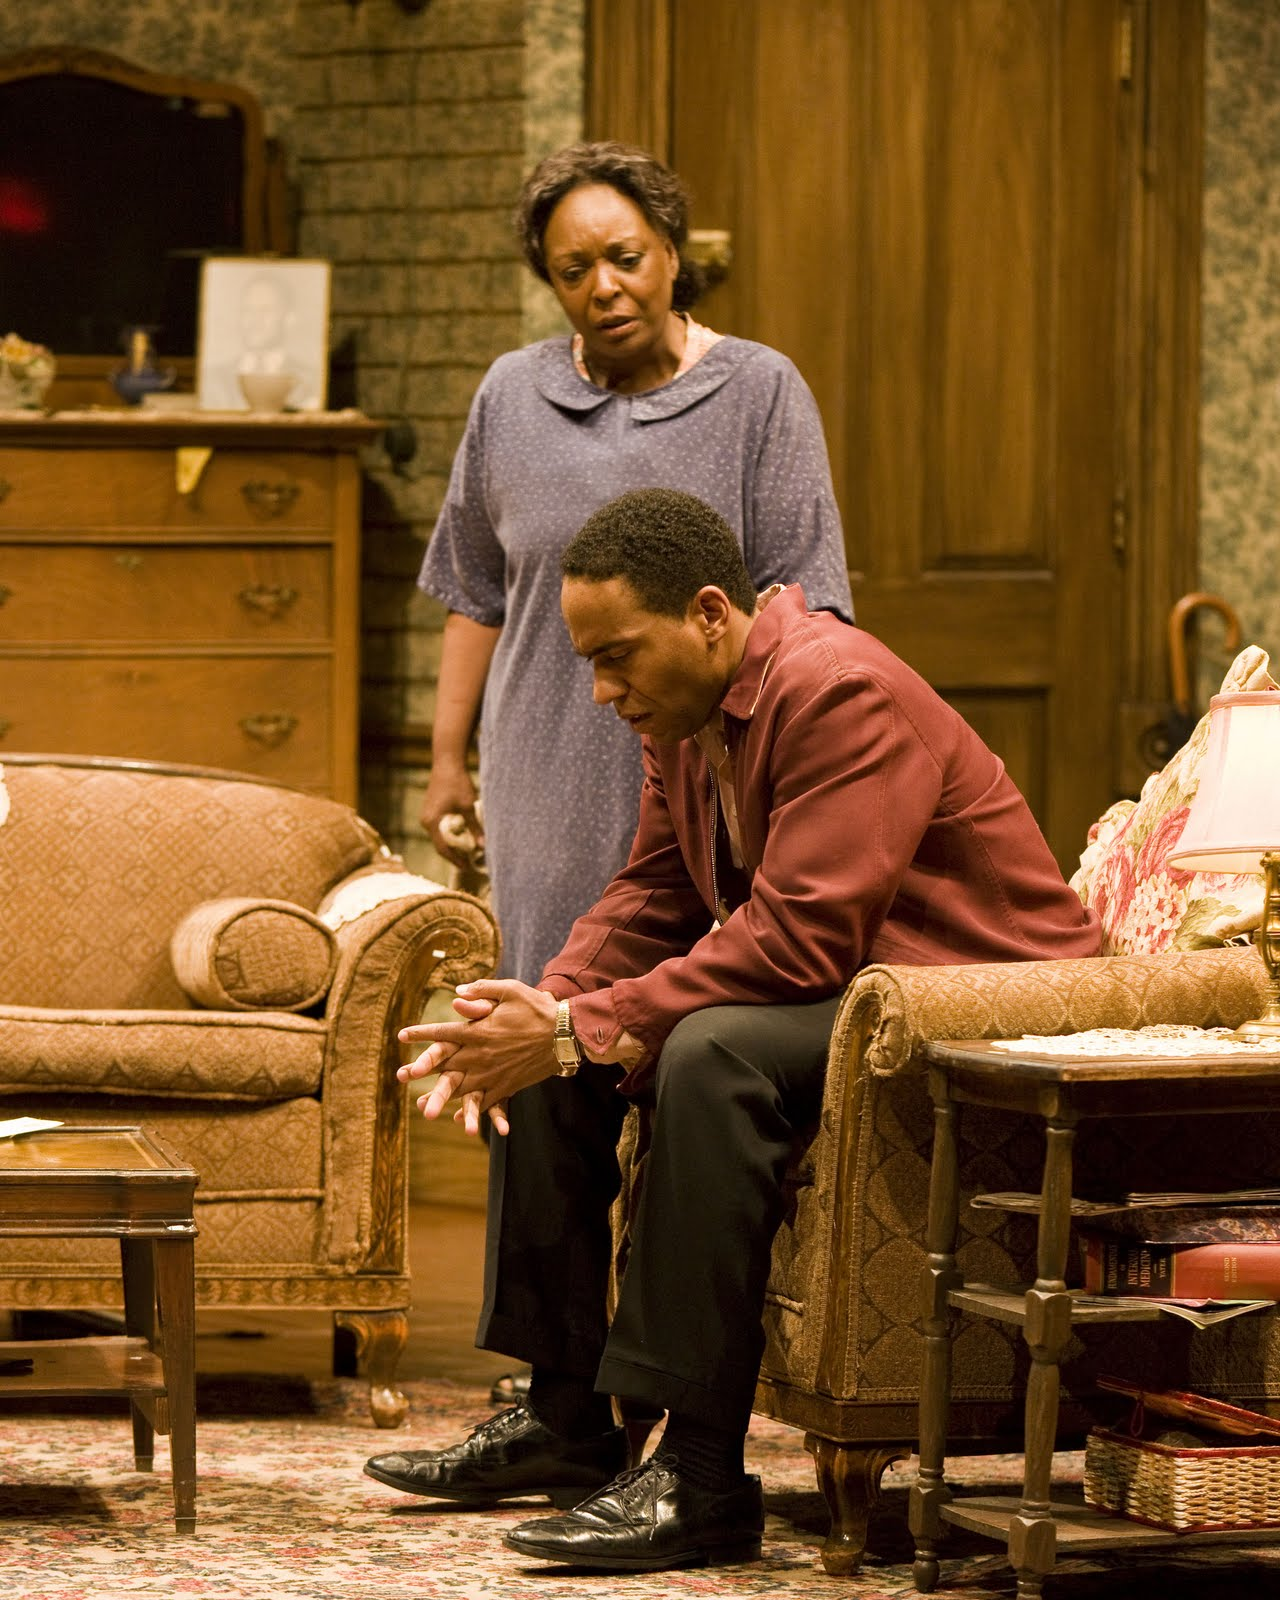 an analysis of the struggles in a raisin in the sun by lorraine hansberry The youngers struggle with competing dreams and racial intolerance in lorraine hansberry's seminal work, which remains a resonant story of hope and the need to retain dignity in a hostile world a noise within's a raisin in the sun cries out to be seen.